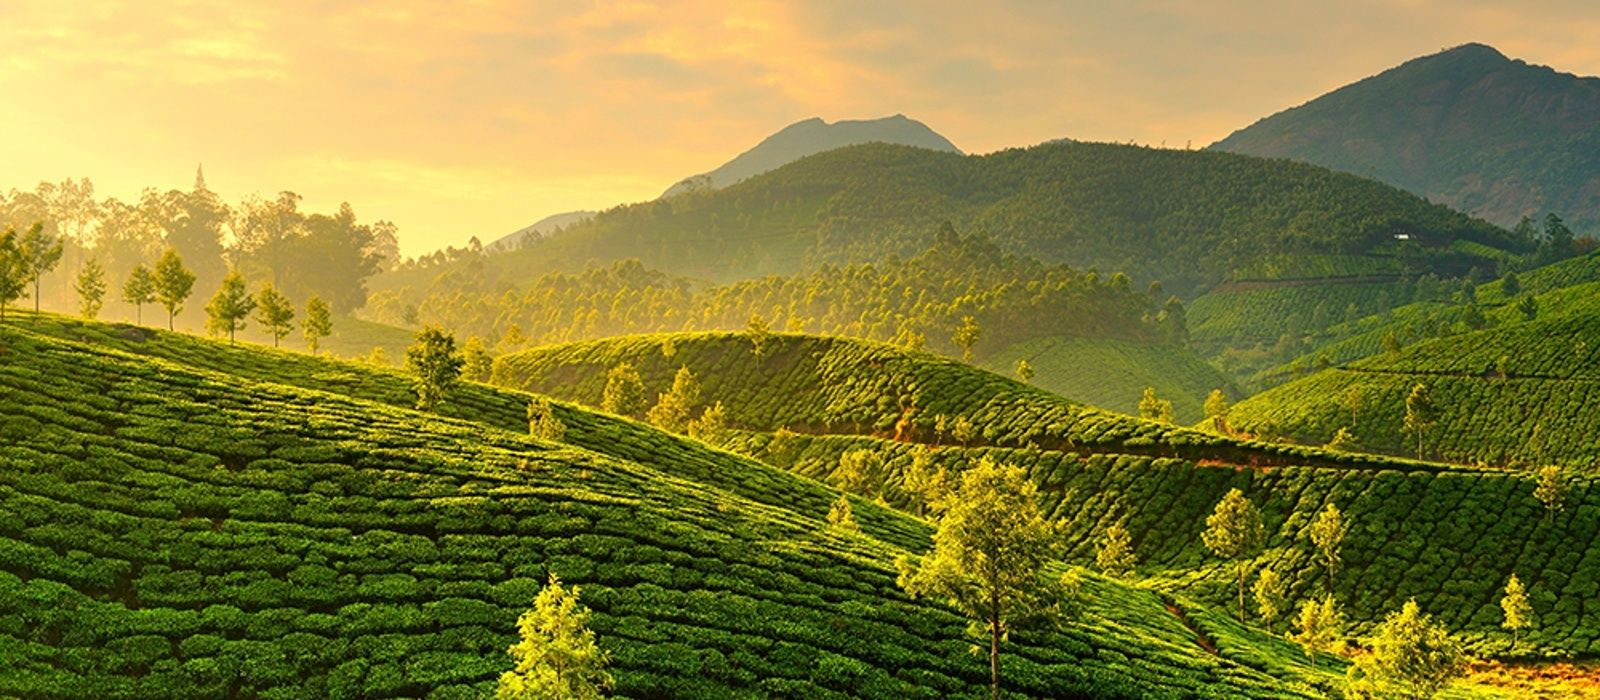 Ooty Hd Wallpapers Exclusive Travel Tips For Your Destination Munnar In South